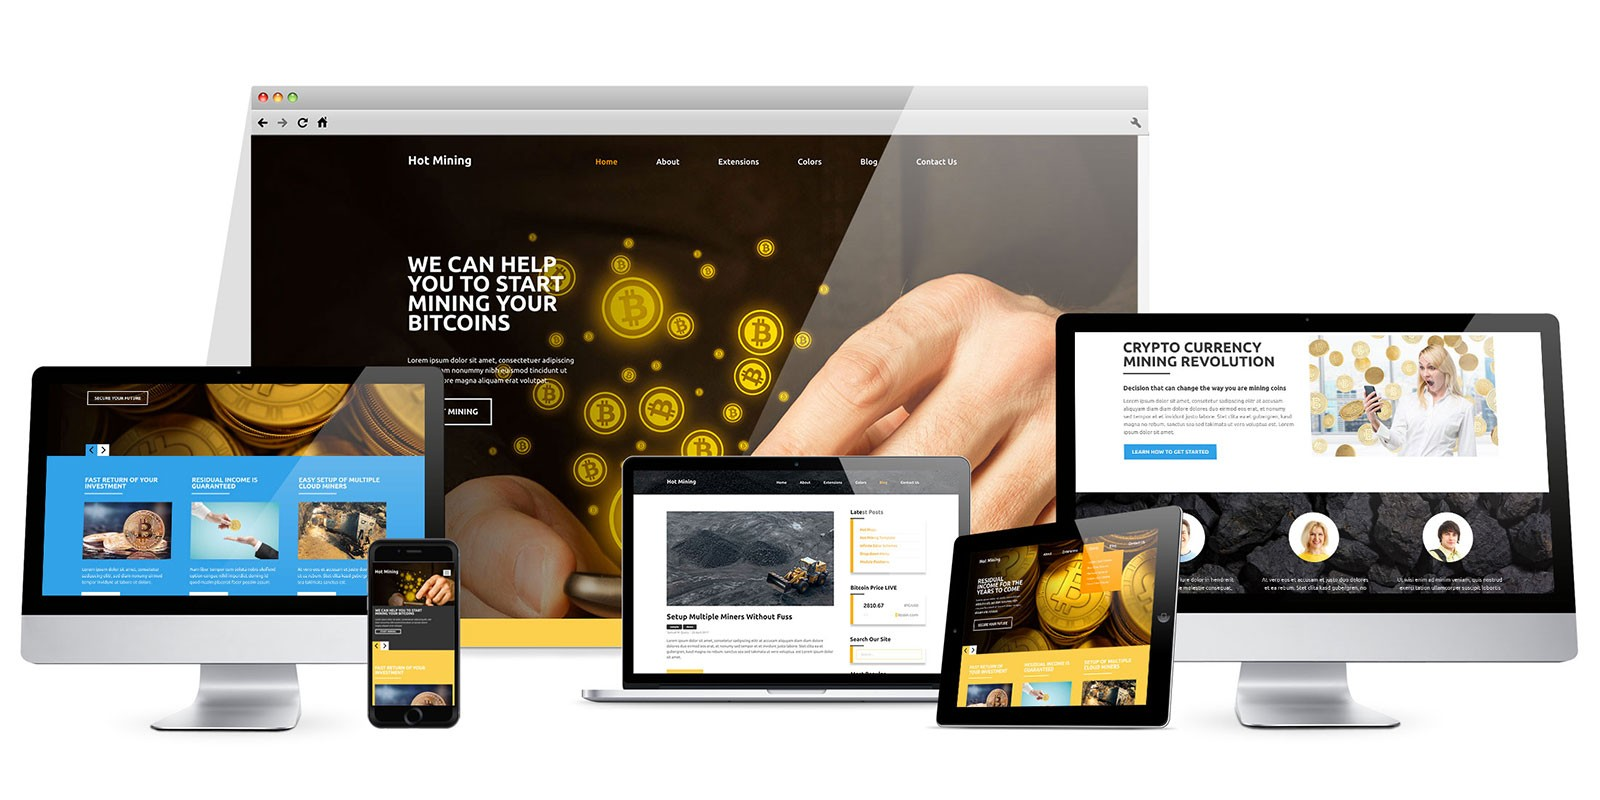 Hot Mining - Joomla Template